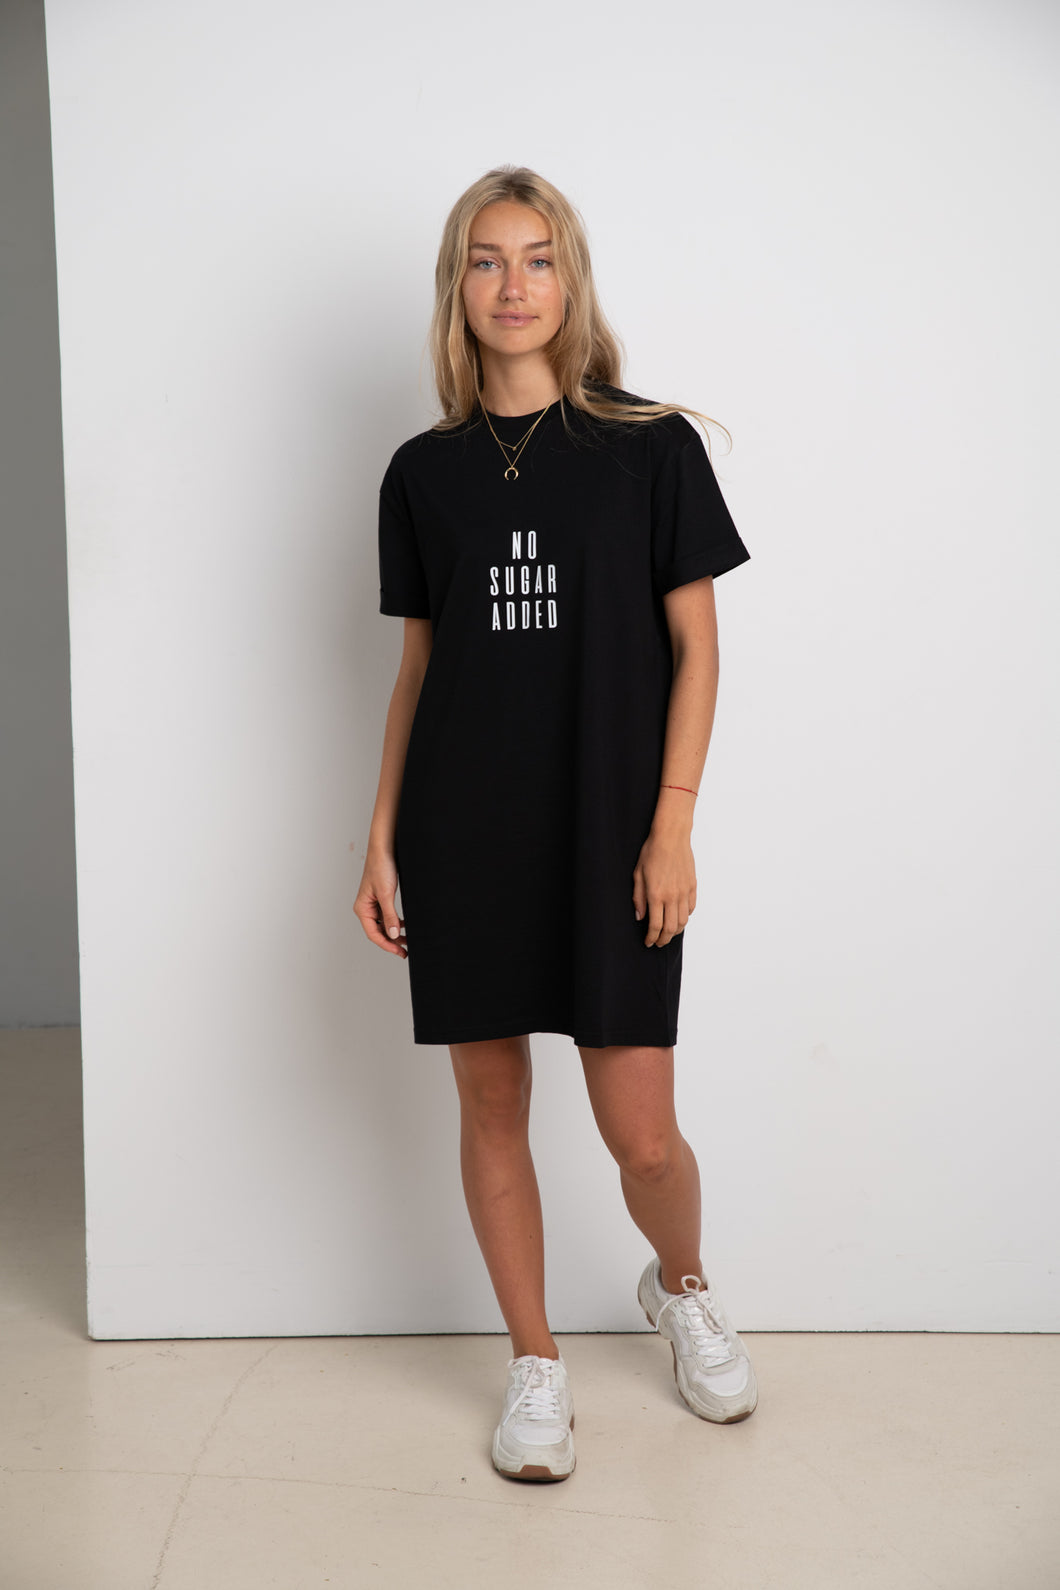 NO SUGAR ADDED #ECOFRIENDLY dress in black